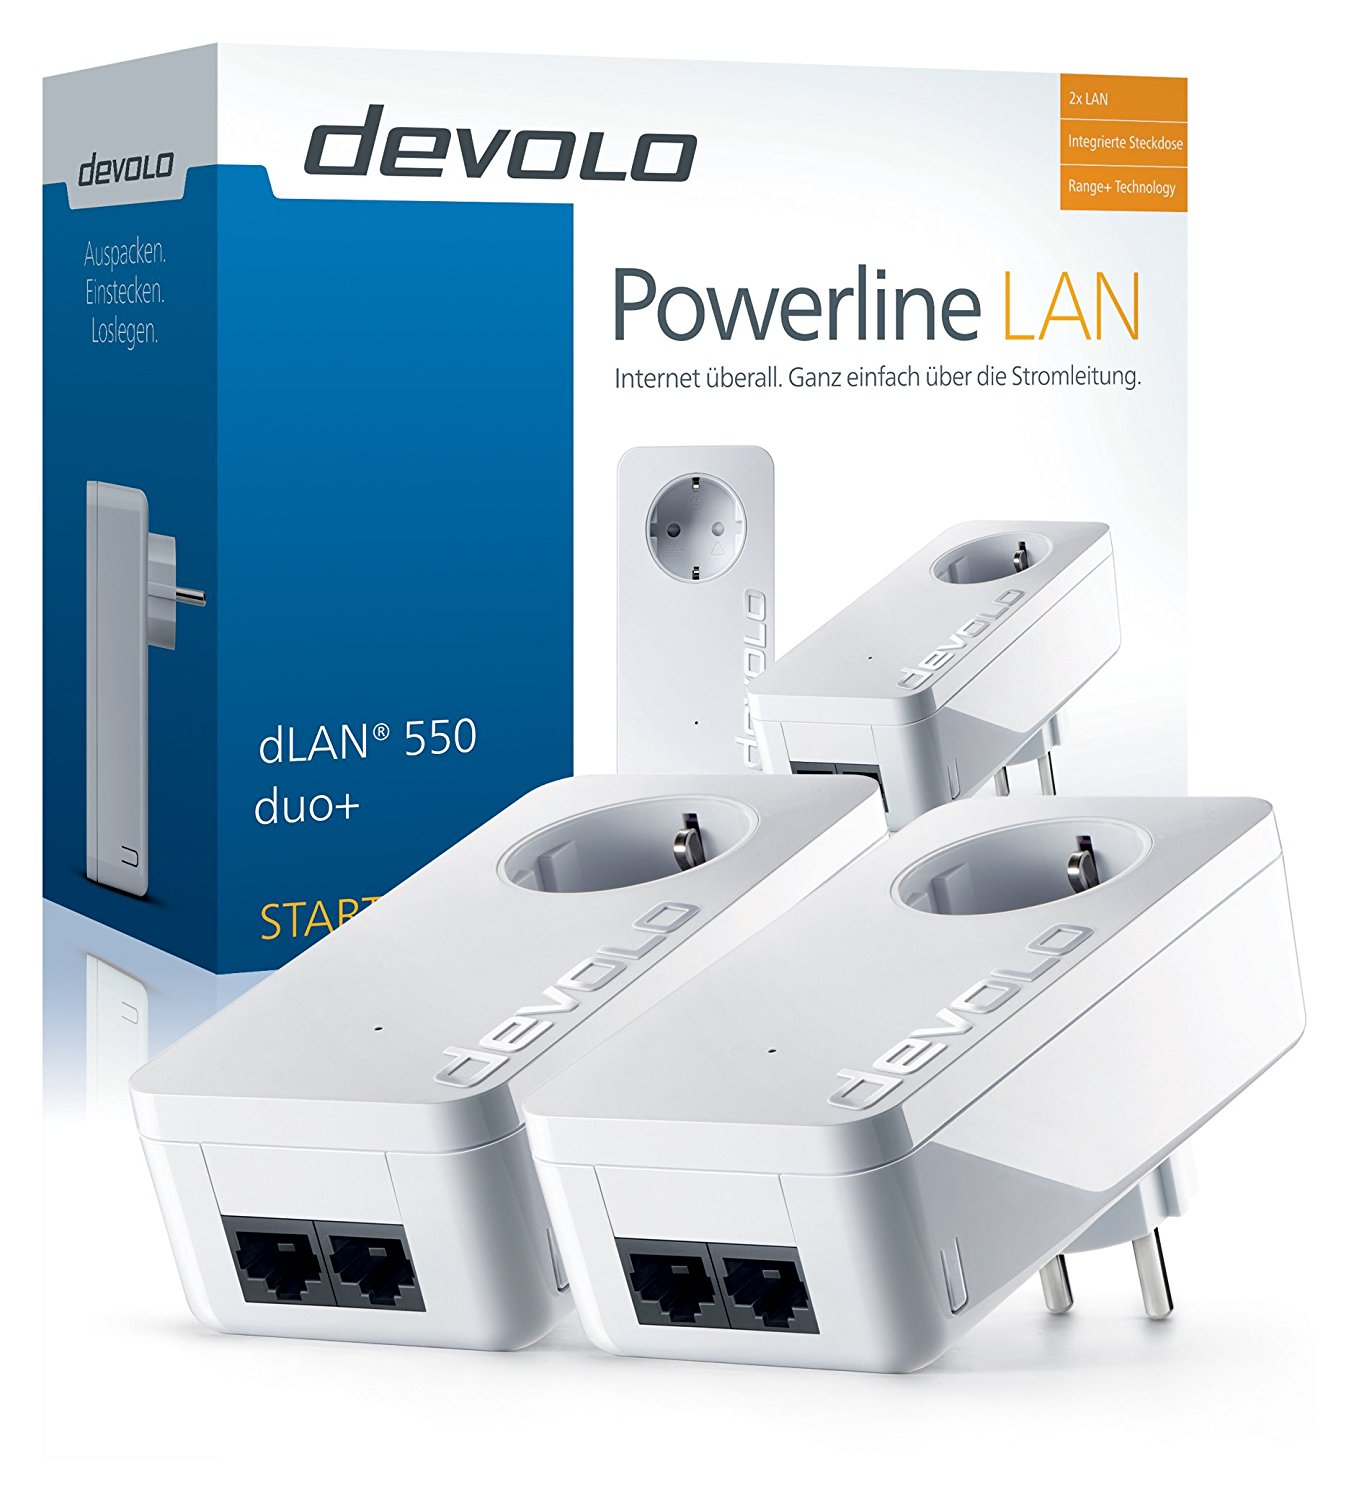 devolo dLAN 550 duo+ Starter Kit Powerline